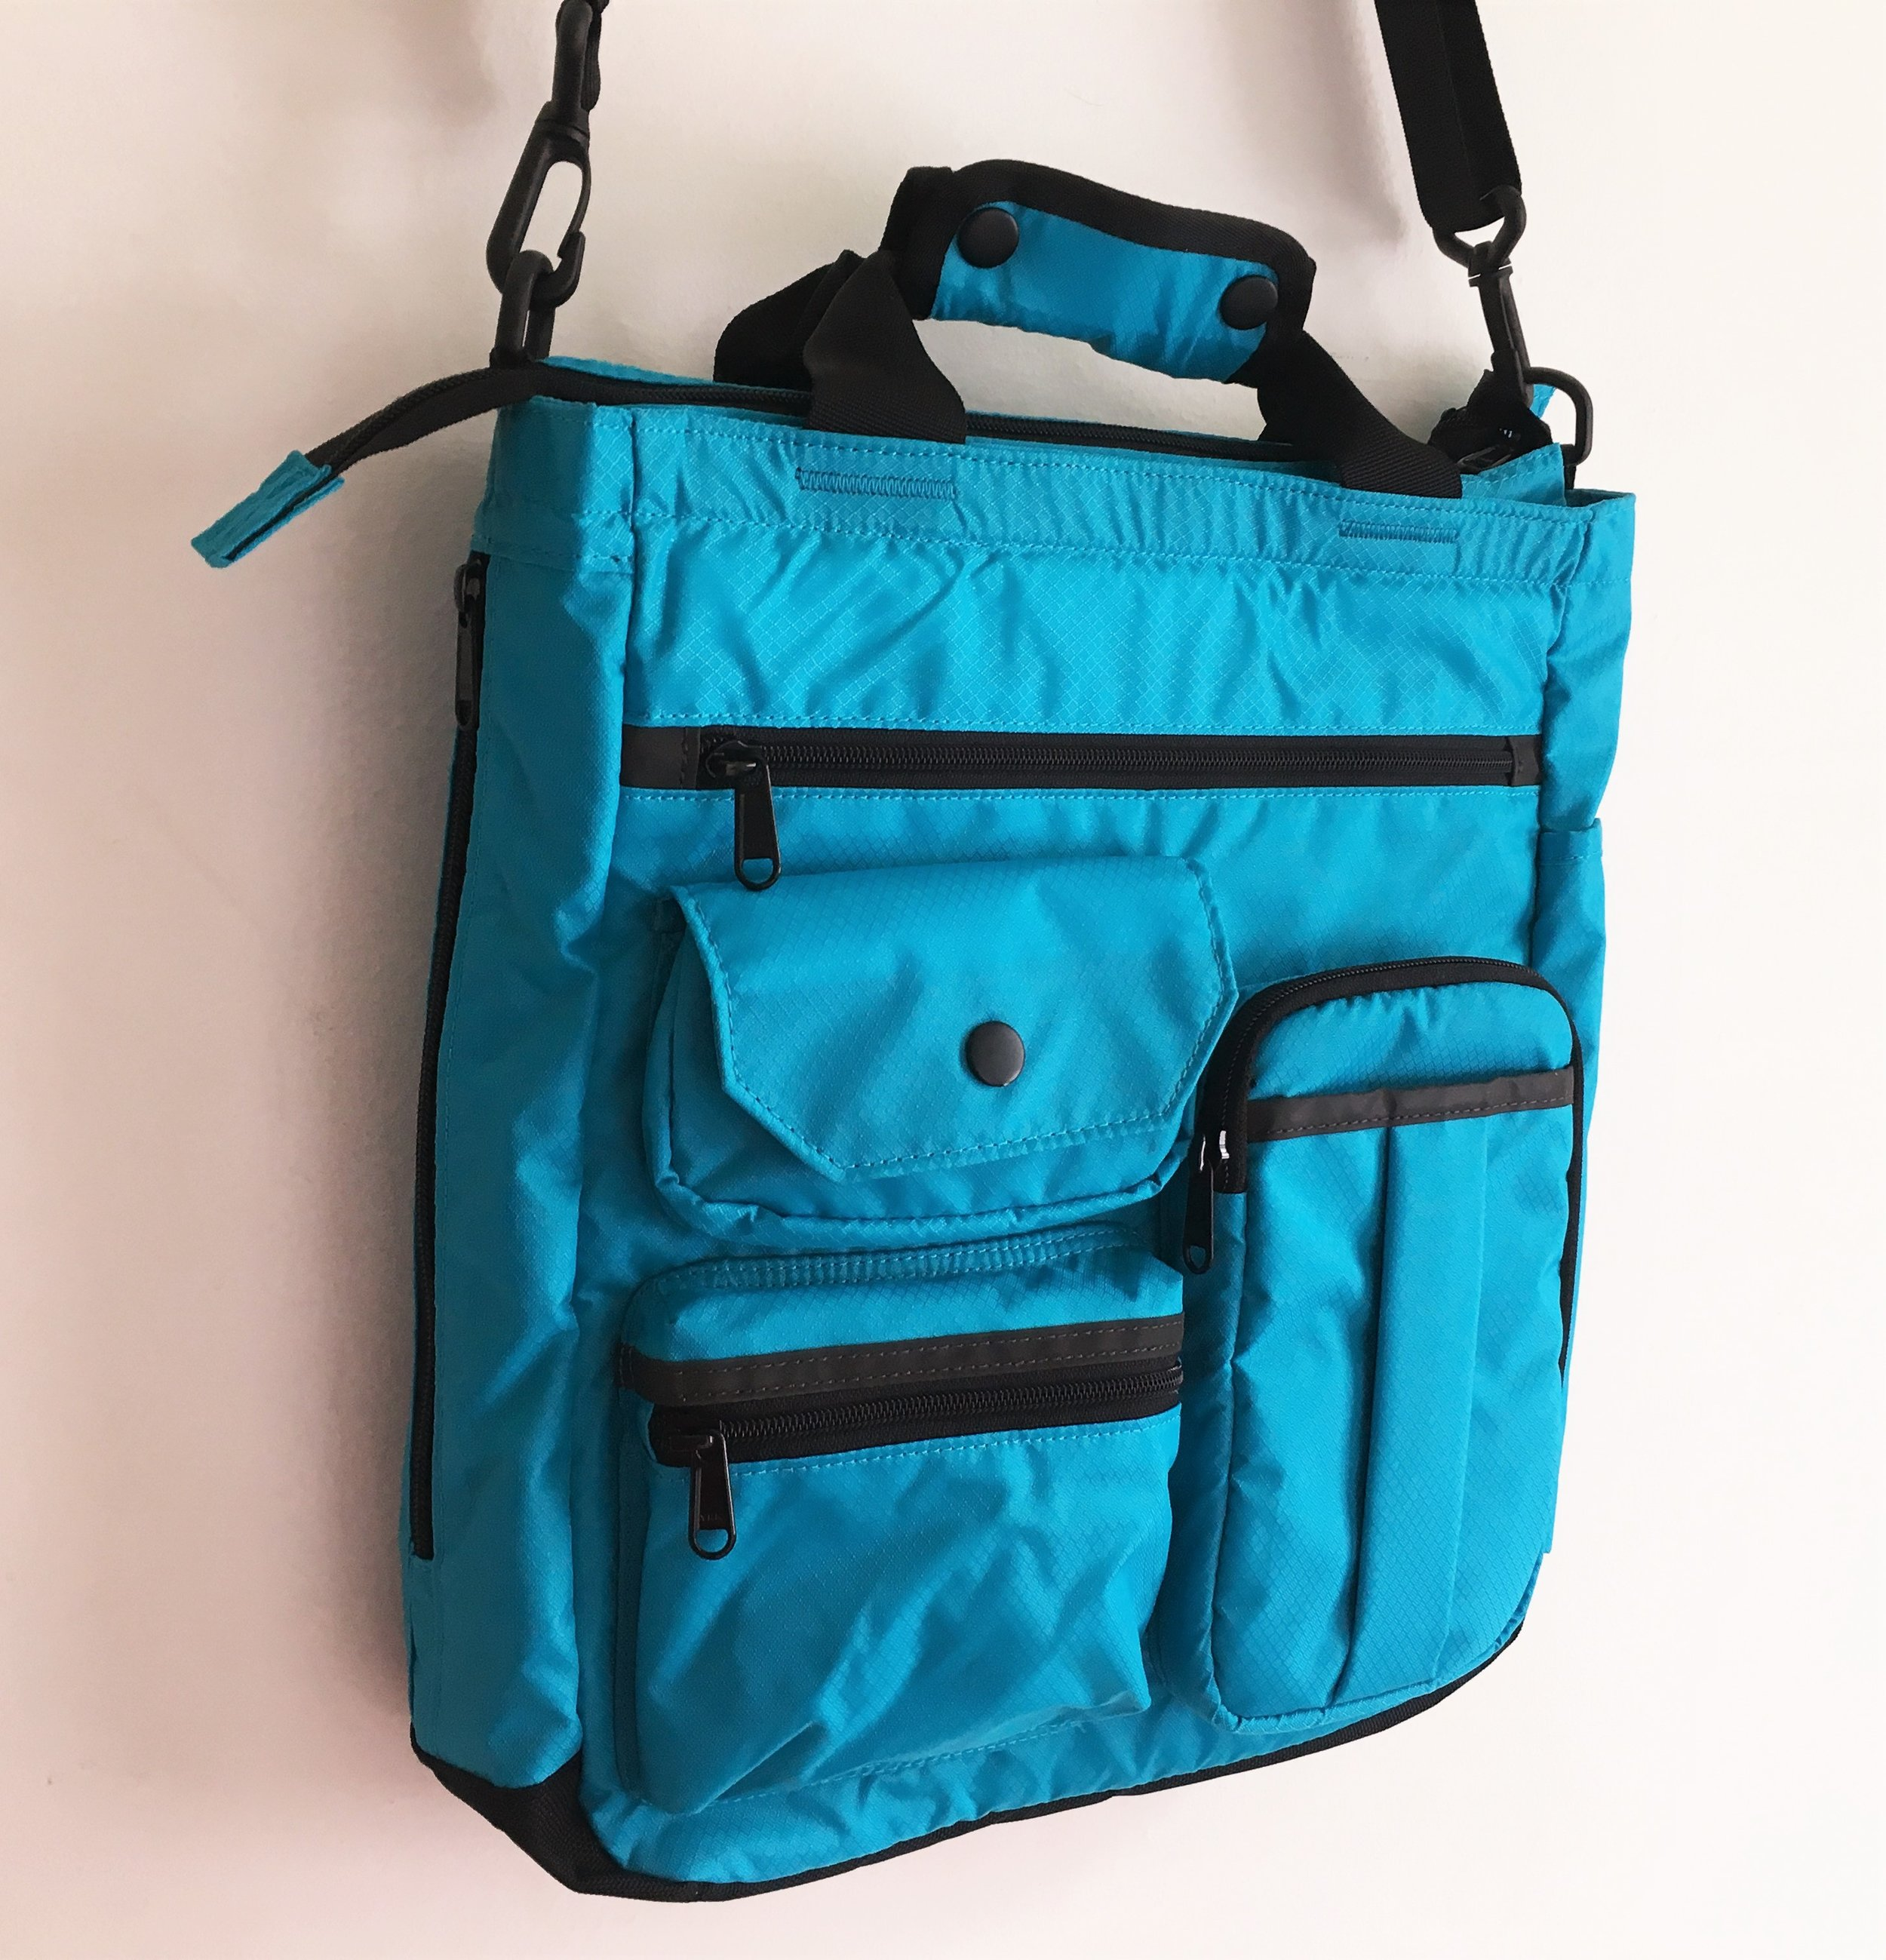 Nomadic NF-01 Tote Shoulder Bag Review